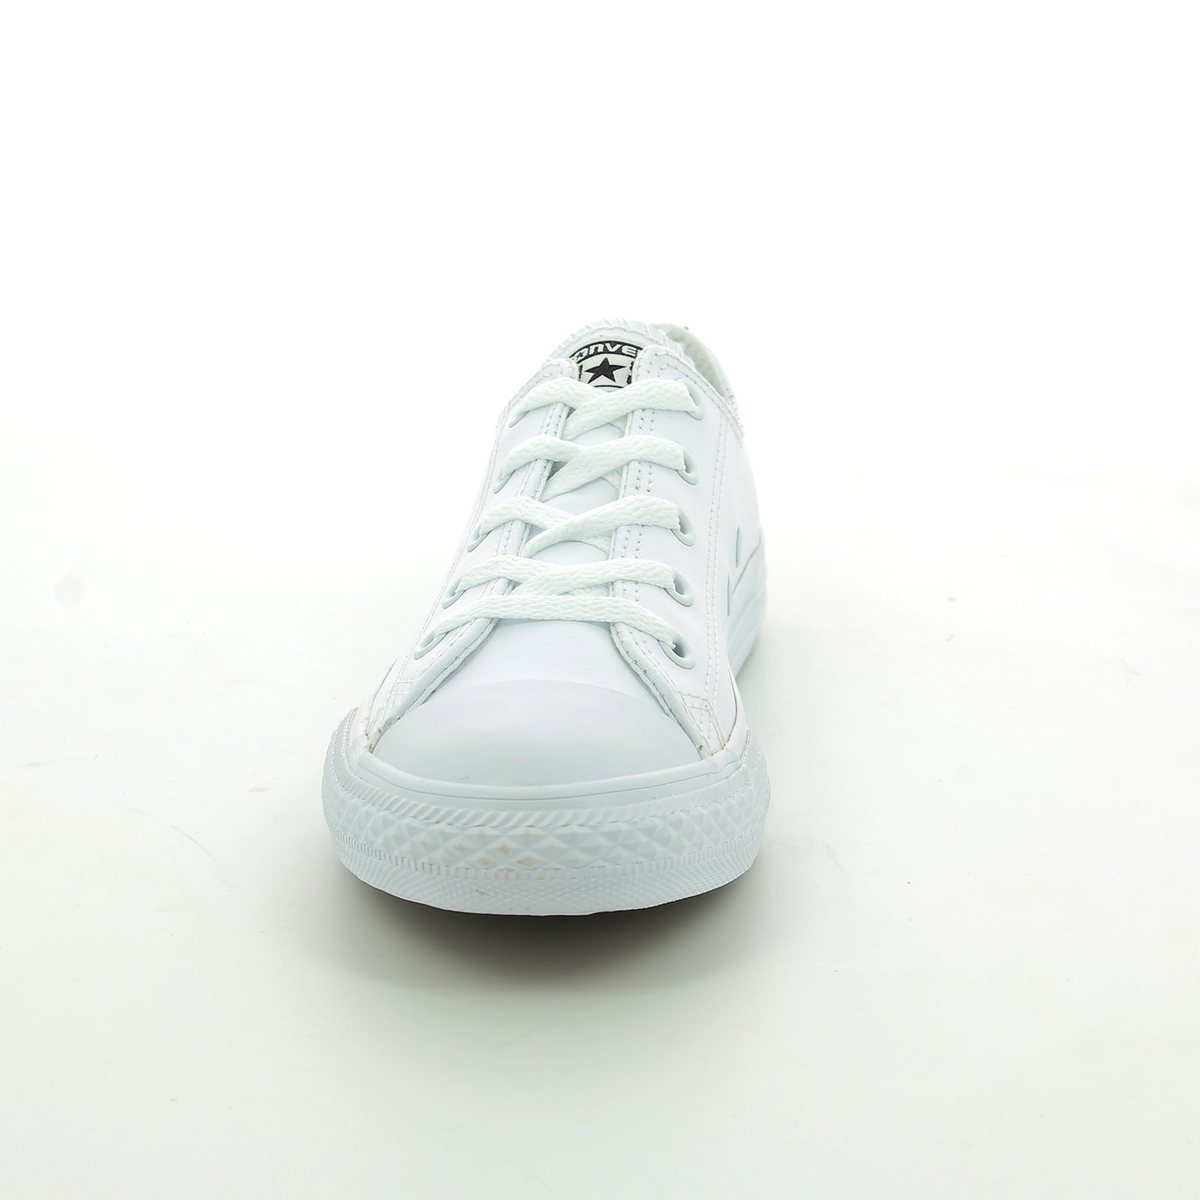 a83968548df9 Converse Trainers - White - 335891C Chuck Taylor All Star OX Mono Leather